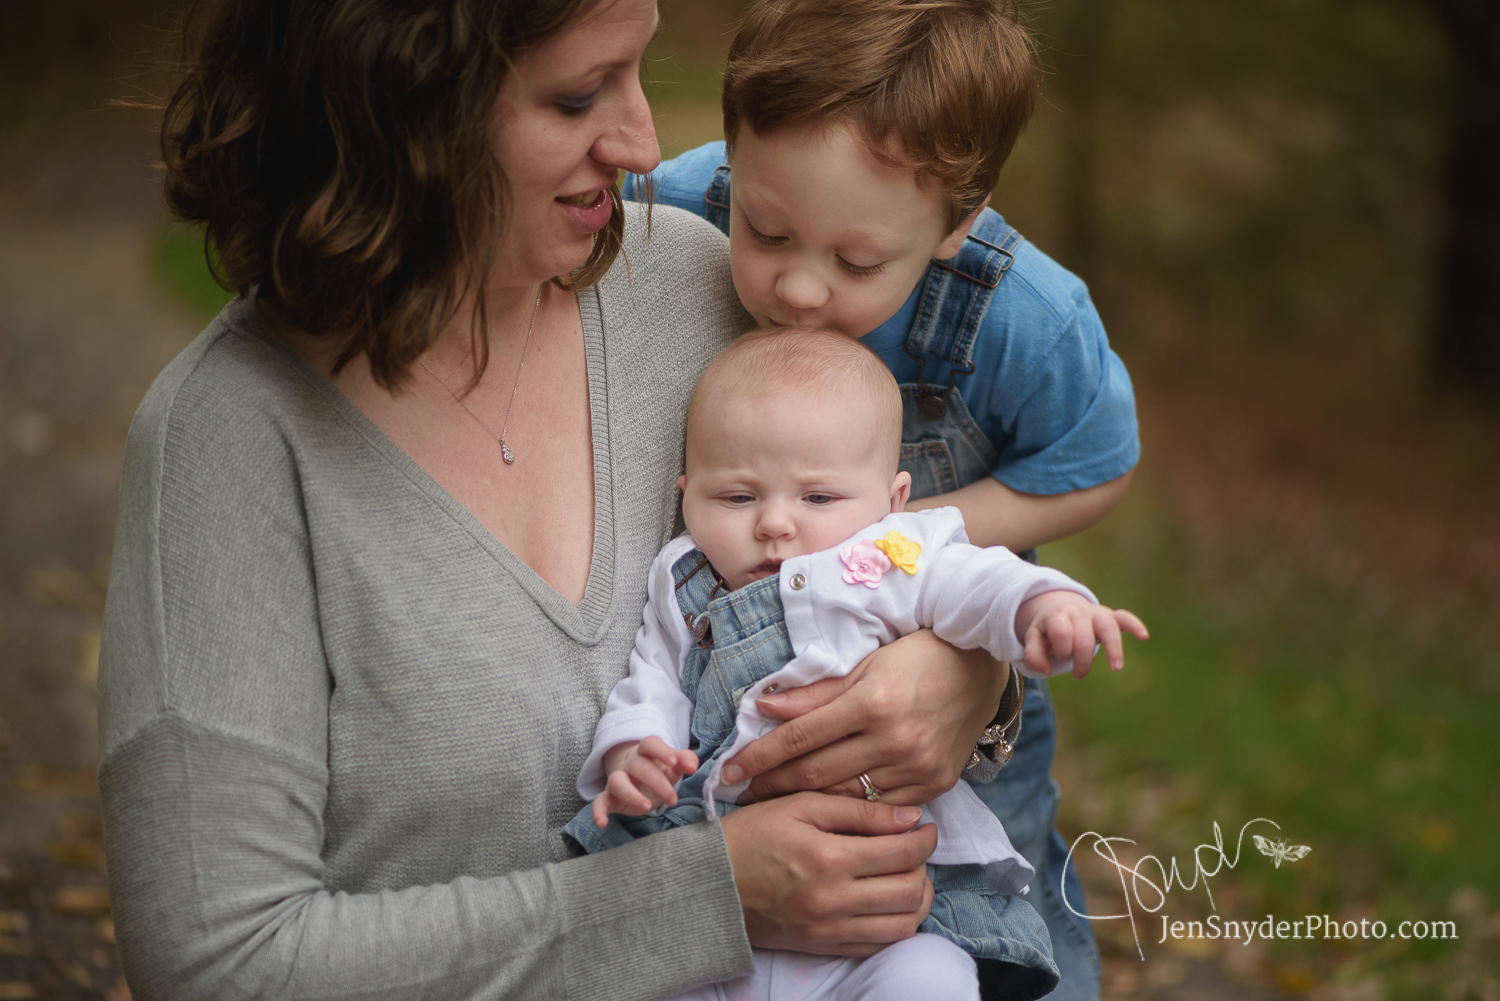 harford county family and child photographer Jen Snyder http://www.jensnyderphoto.com